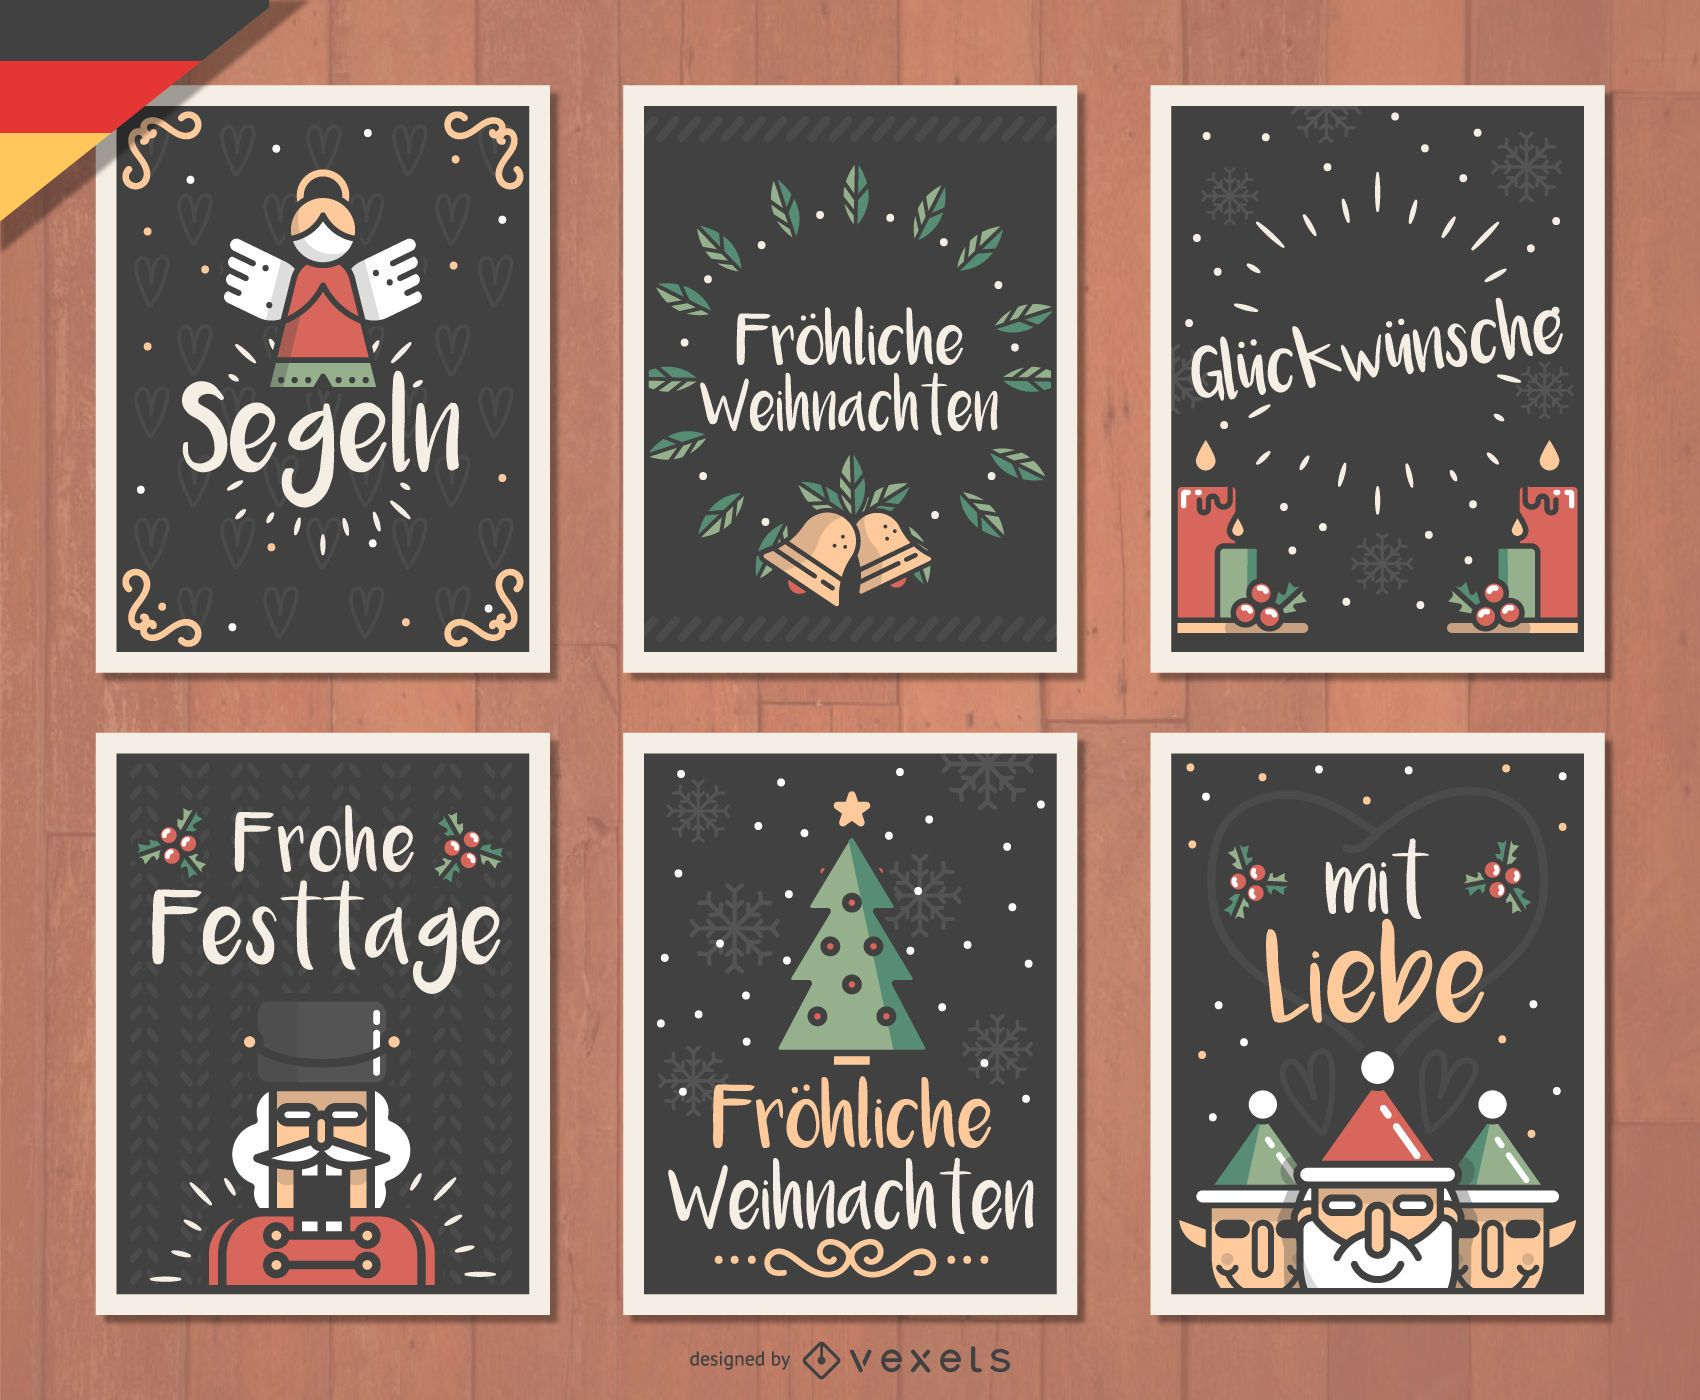 Design Weihnachten German Fr Hliche Weihnachten Christmas Card Set Vector Download